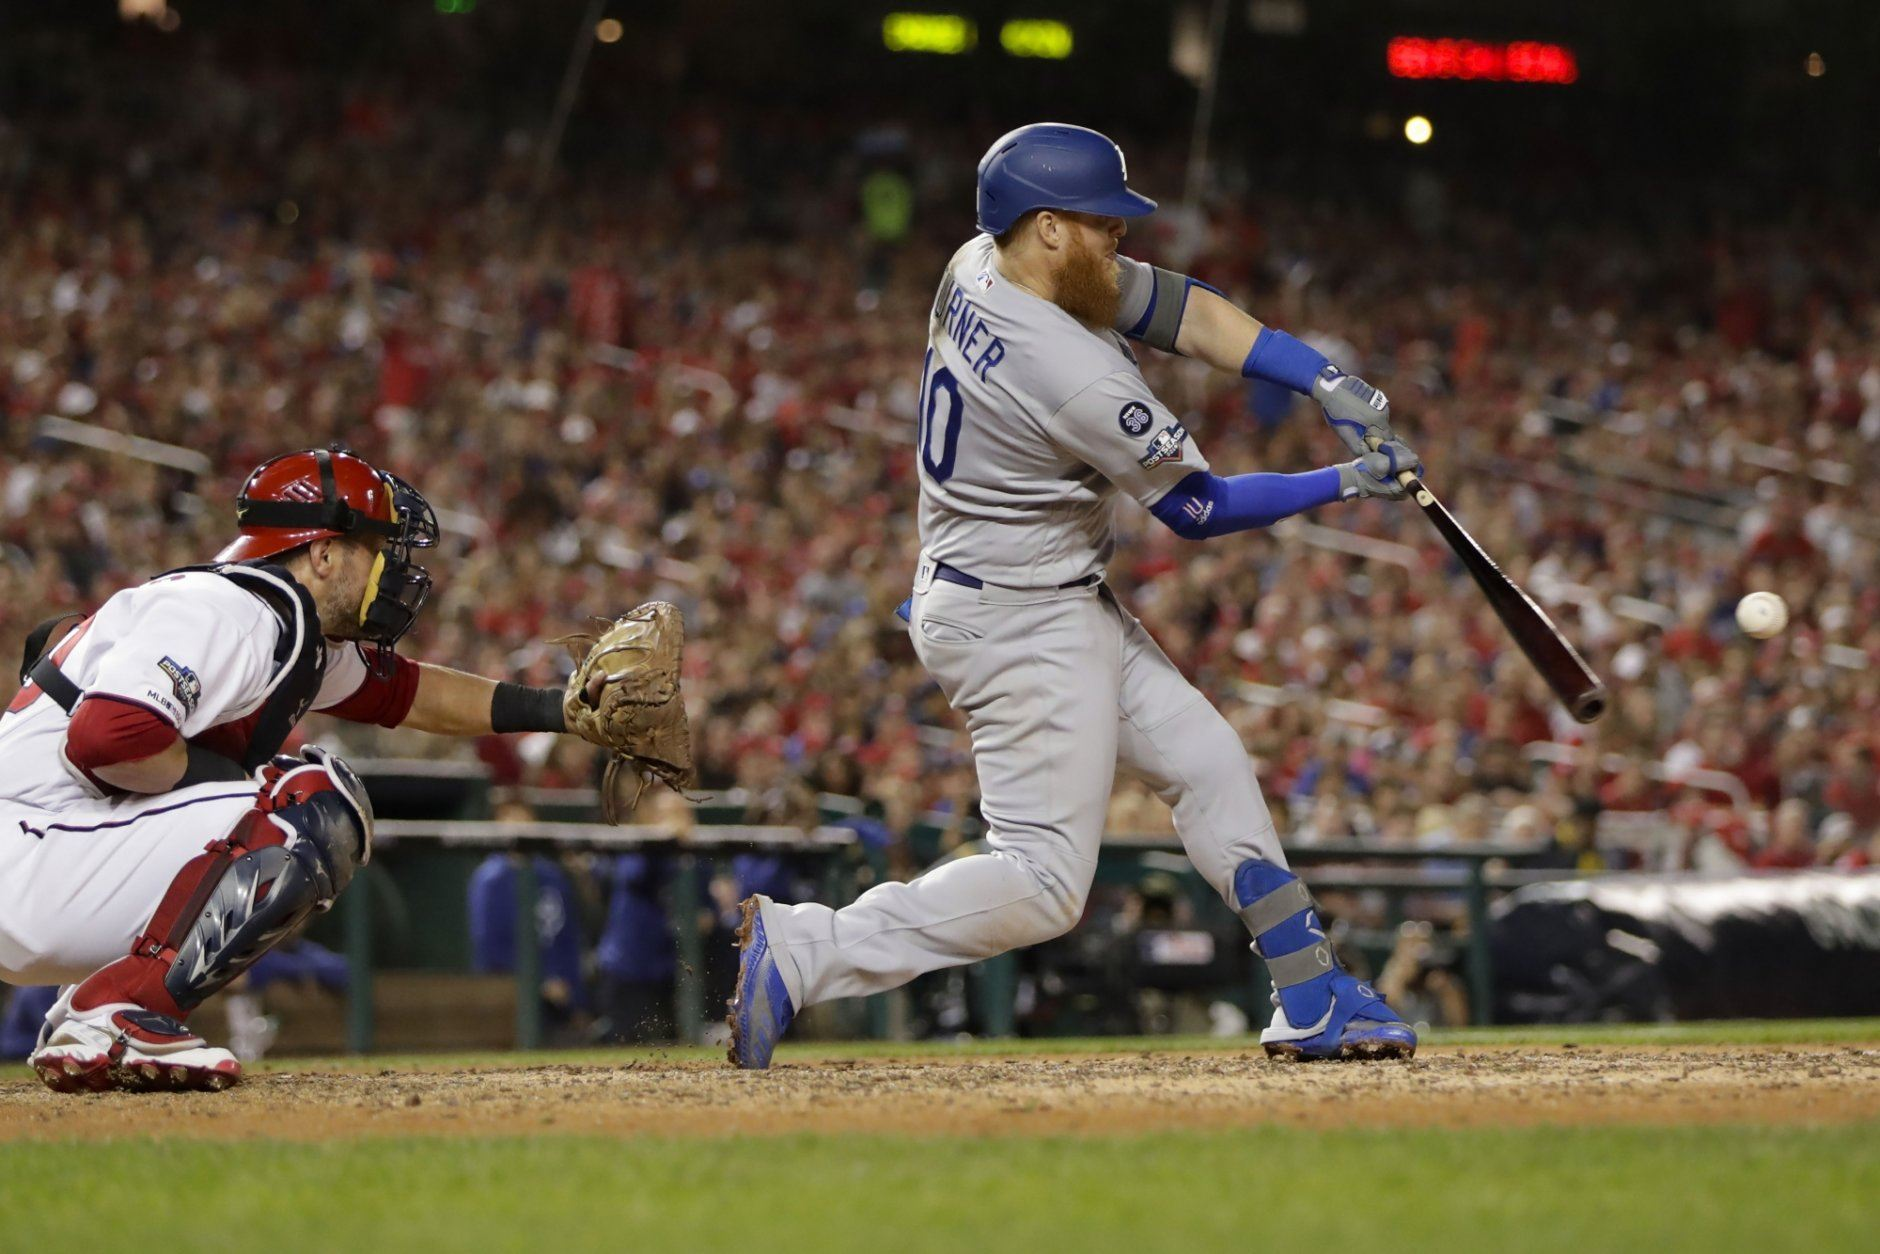 Los Angeles Dodgers third baseman Justin Turner (10) hits a three-run home run off Washington Nationals relief pitcher Wander Suero during the sixth inning in Game 3 of a baseball National League Division Series on Sunday, Oct. 6, 2019, in Washington. Behind the plate is Nationals catcher Kurt Suzuki. (AP Photo/Julio Cortez)